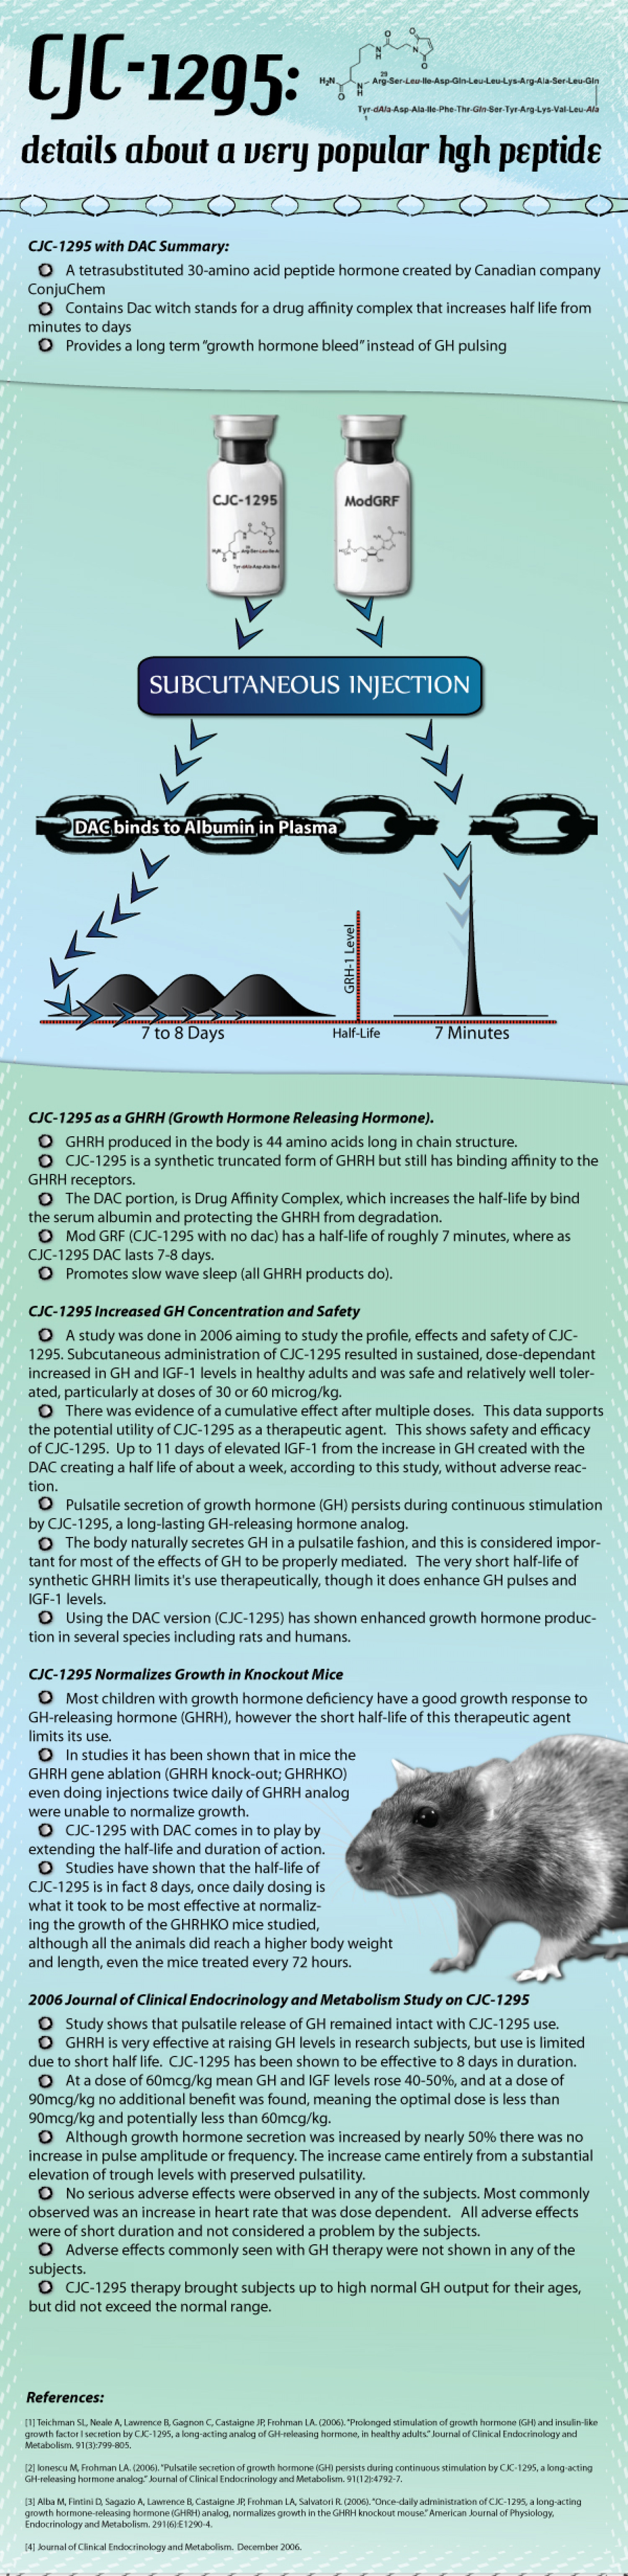 CJC-1295: details about a very popular growth peptide Infographic